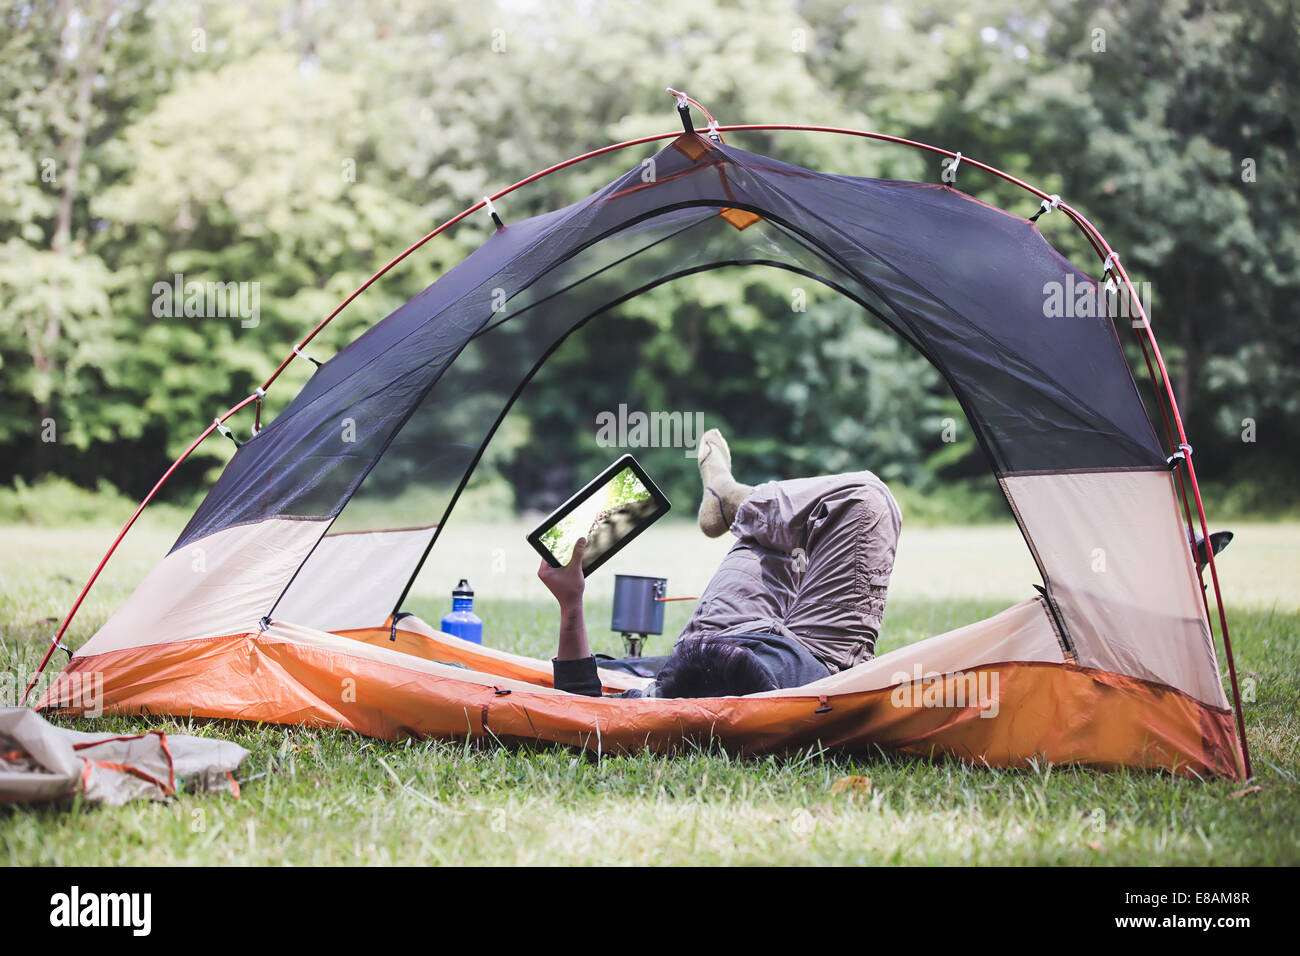 Young man lying in tent using digital tablet Photo Stock